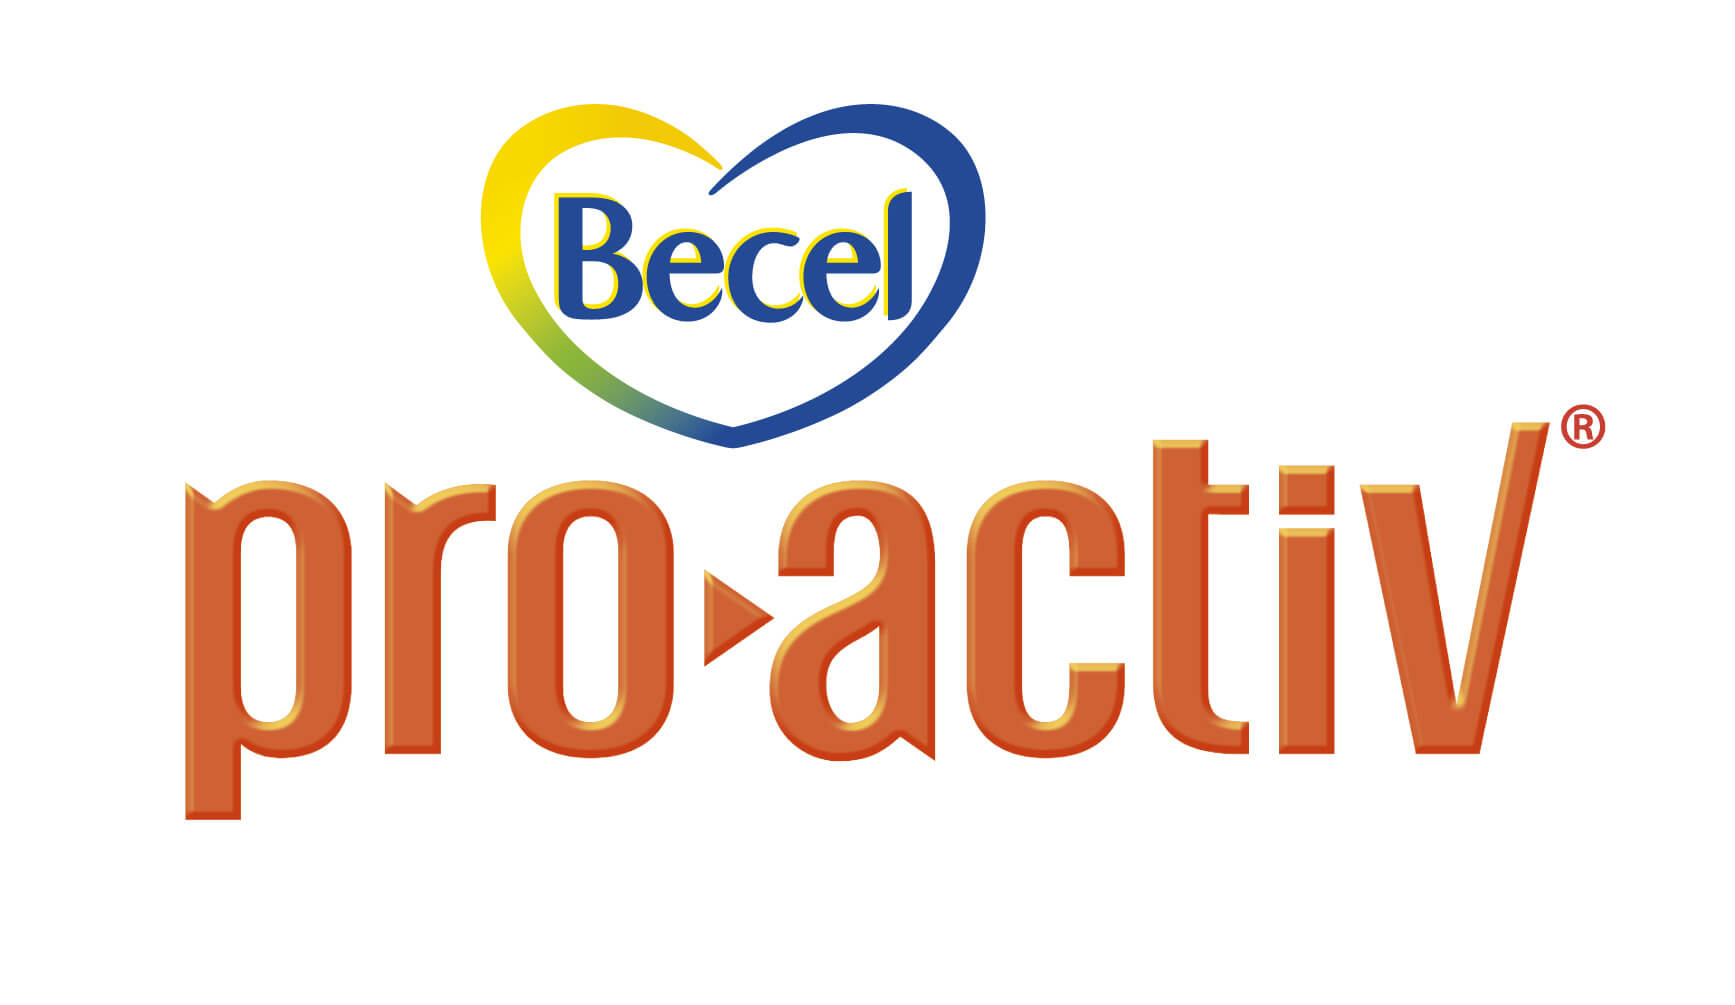 press_becel_proactiv_logo